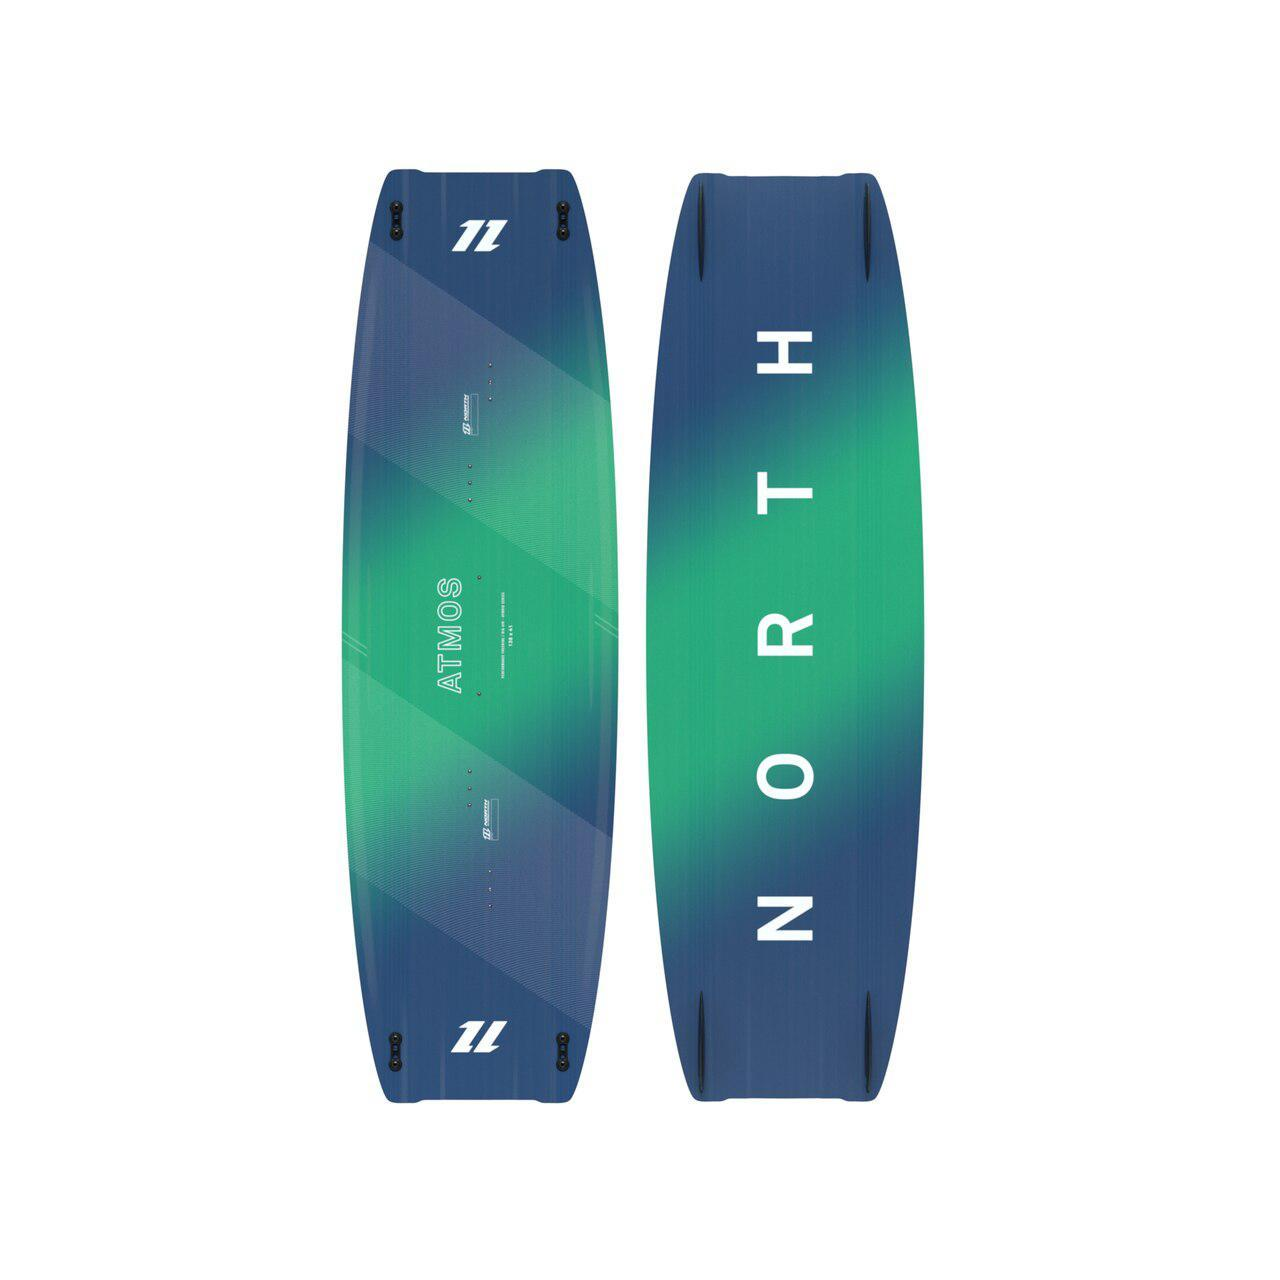 2020 North Atmos Hybrid Kiteboard-Big Winds